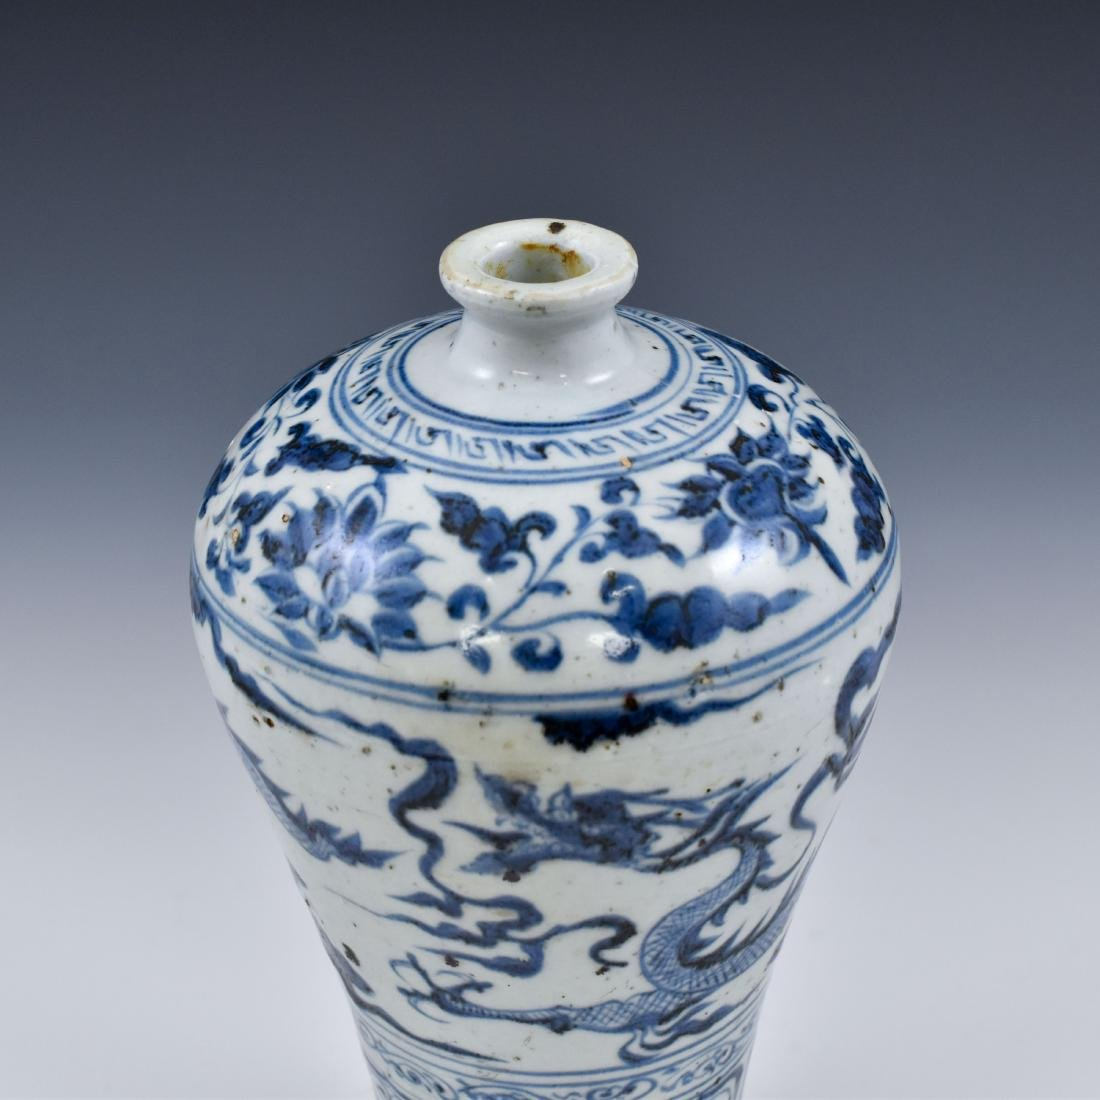 YUAN CHINESE BLUE & WHITE DRAGON MEIPING VASE - 8